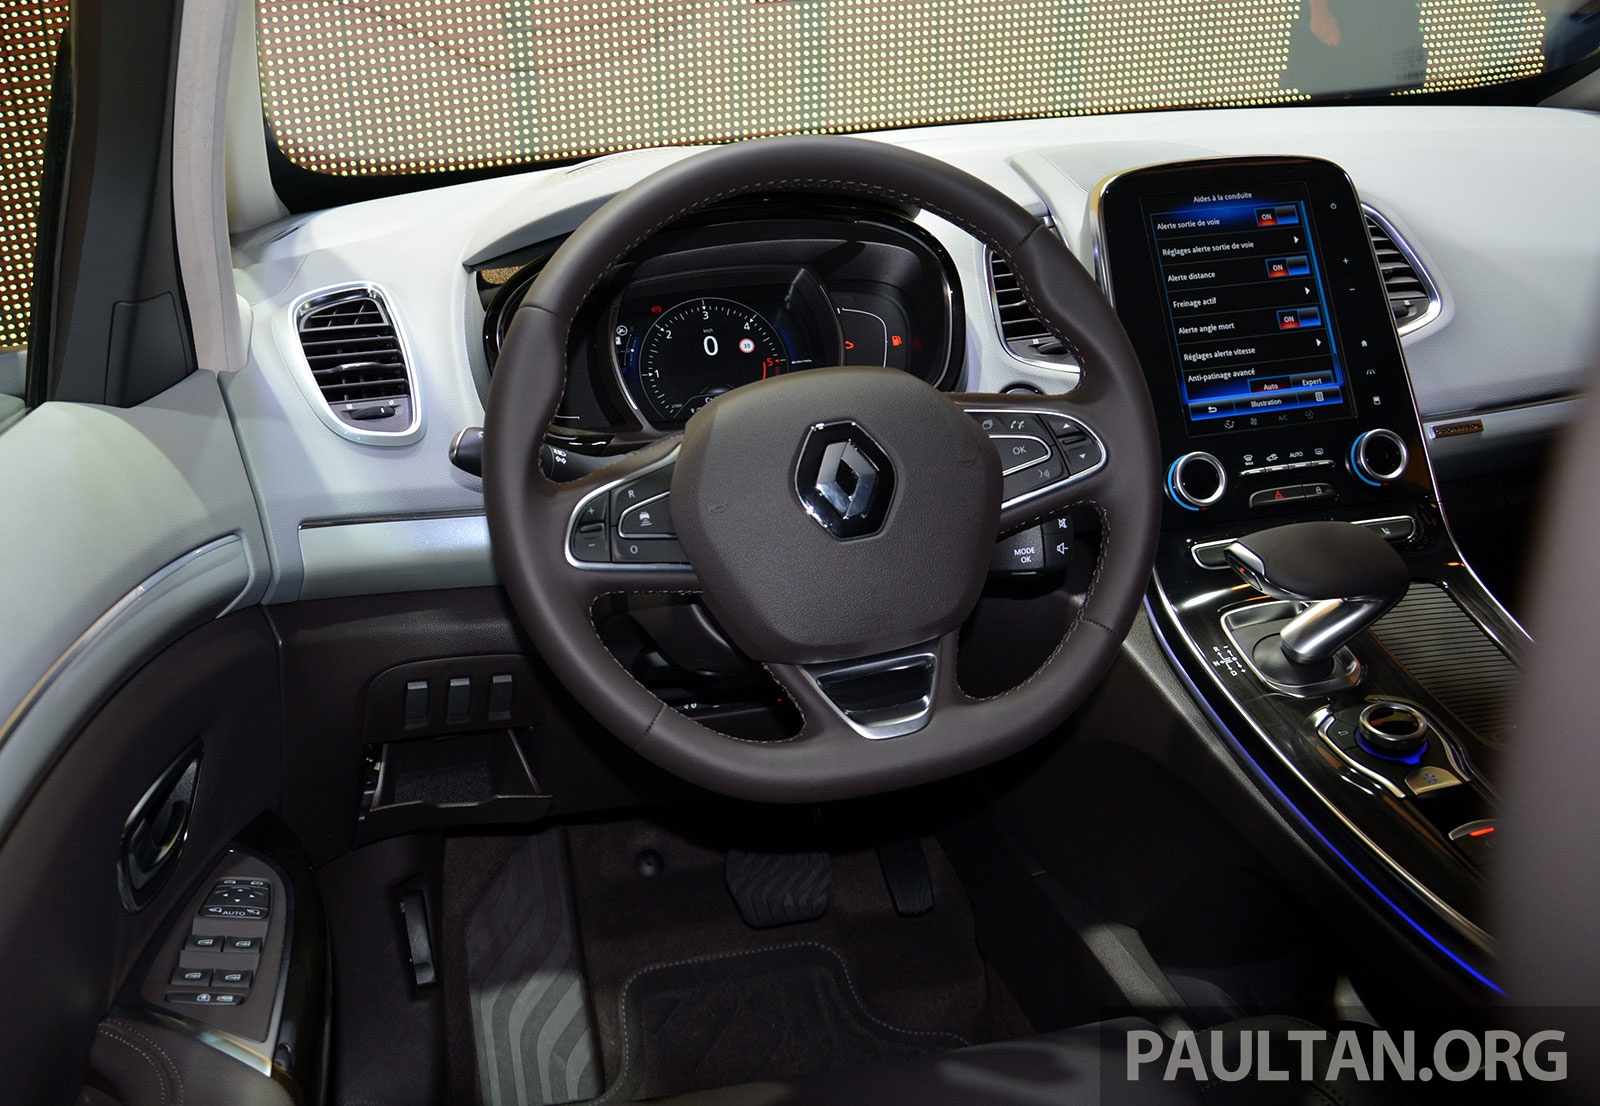 Renault espace v p gina 21 forocoches for Renault espace v interieur